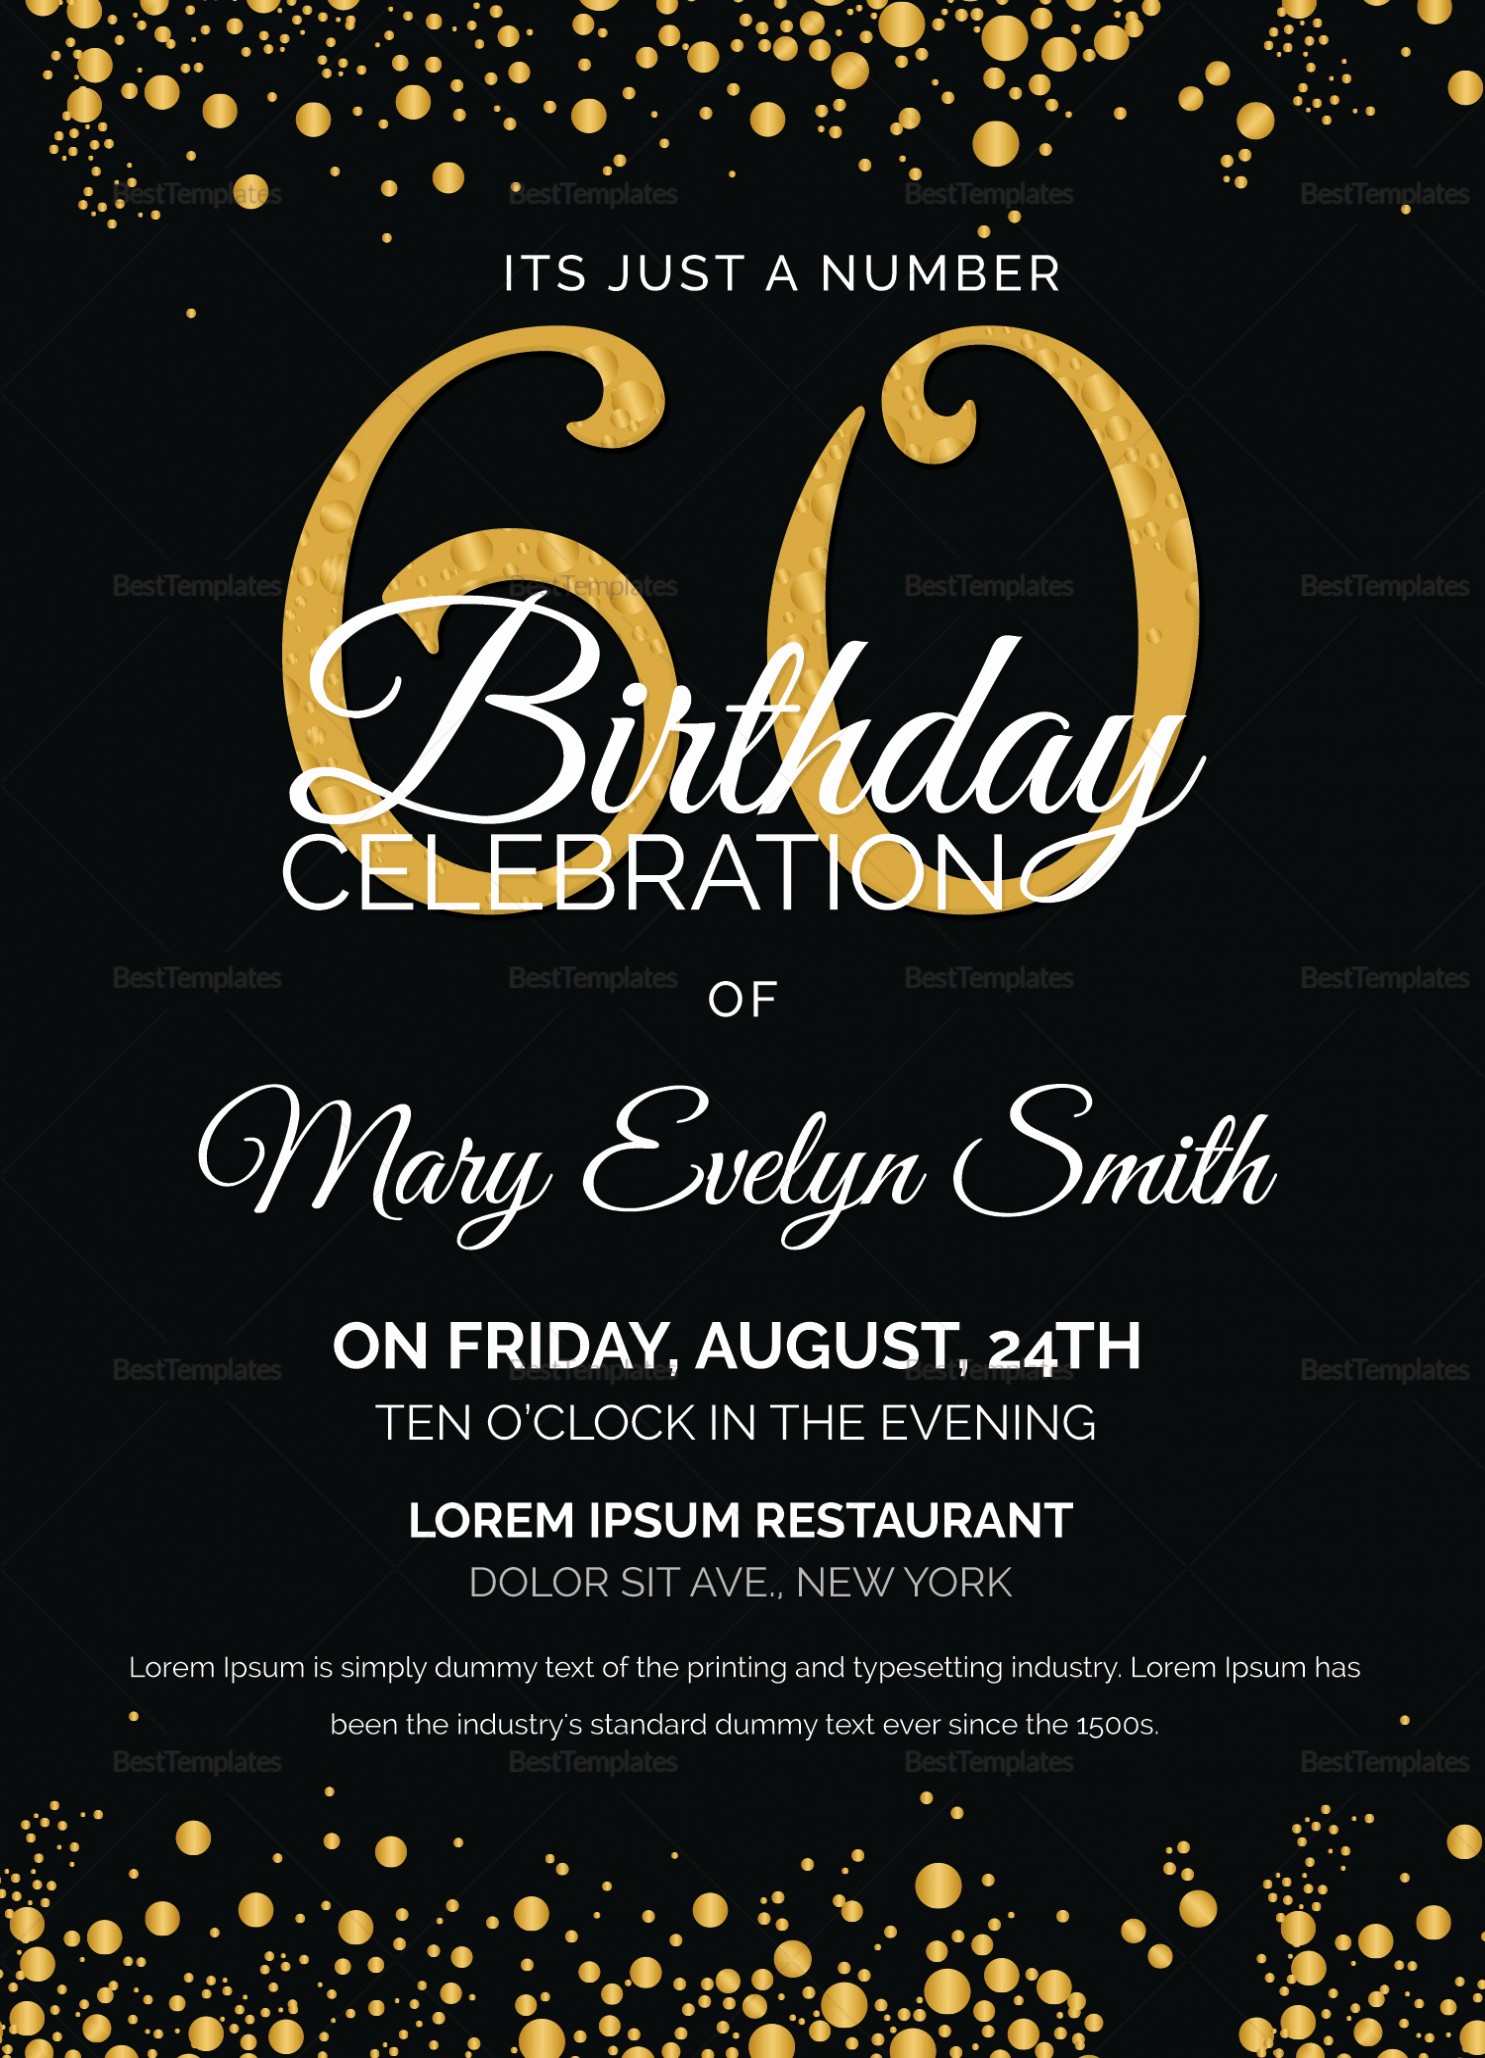 60th Birthday Invitations Template Best Of Tips Special 60th Birthday Invitations for Your Special